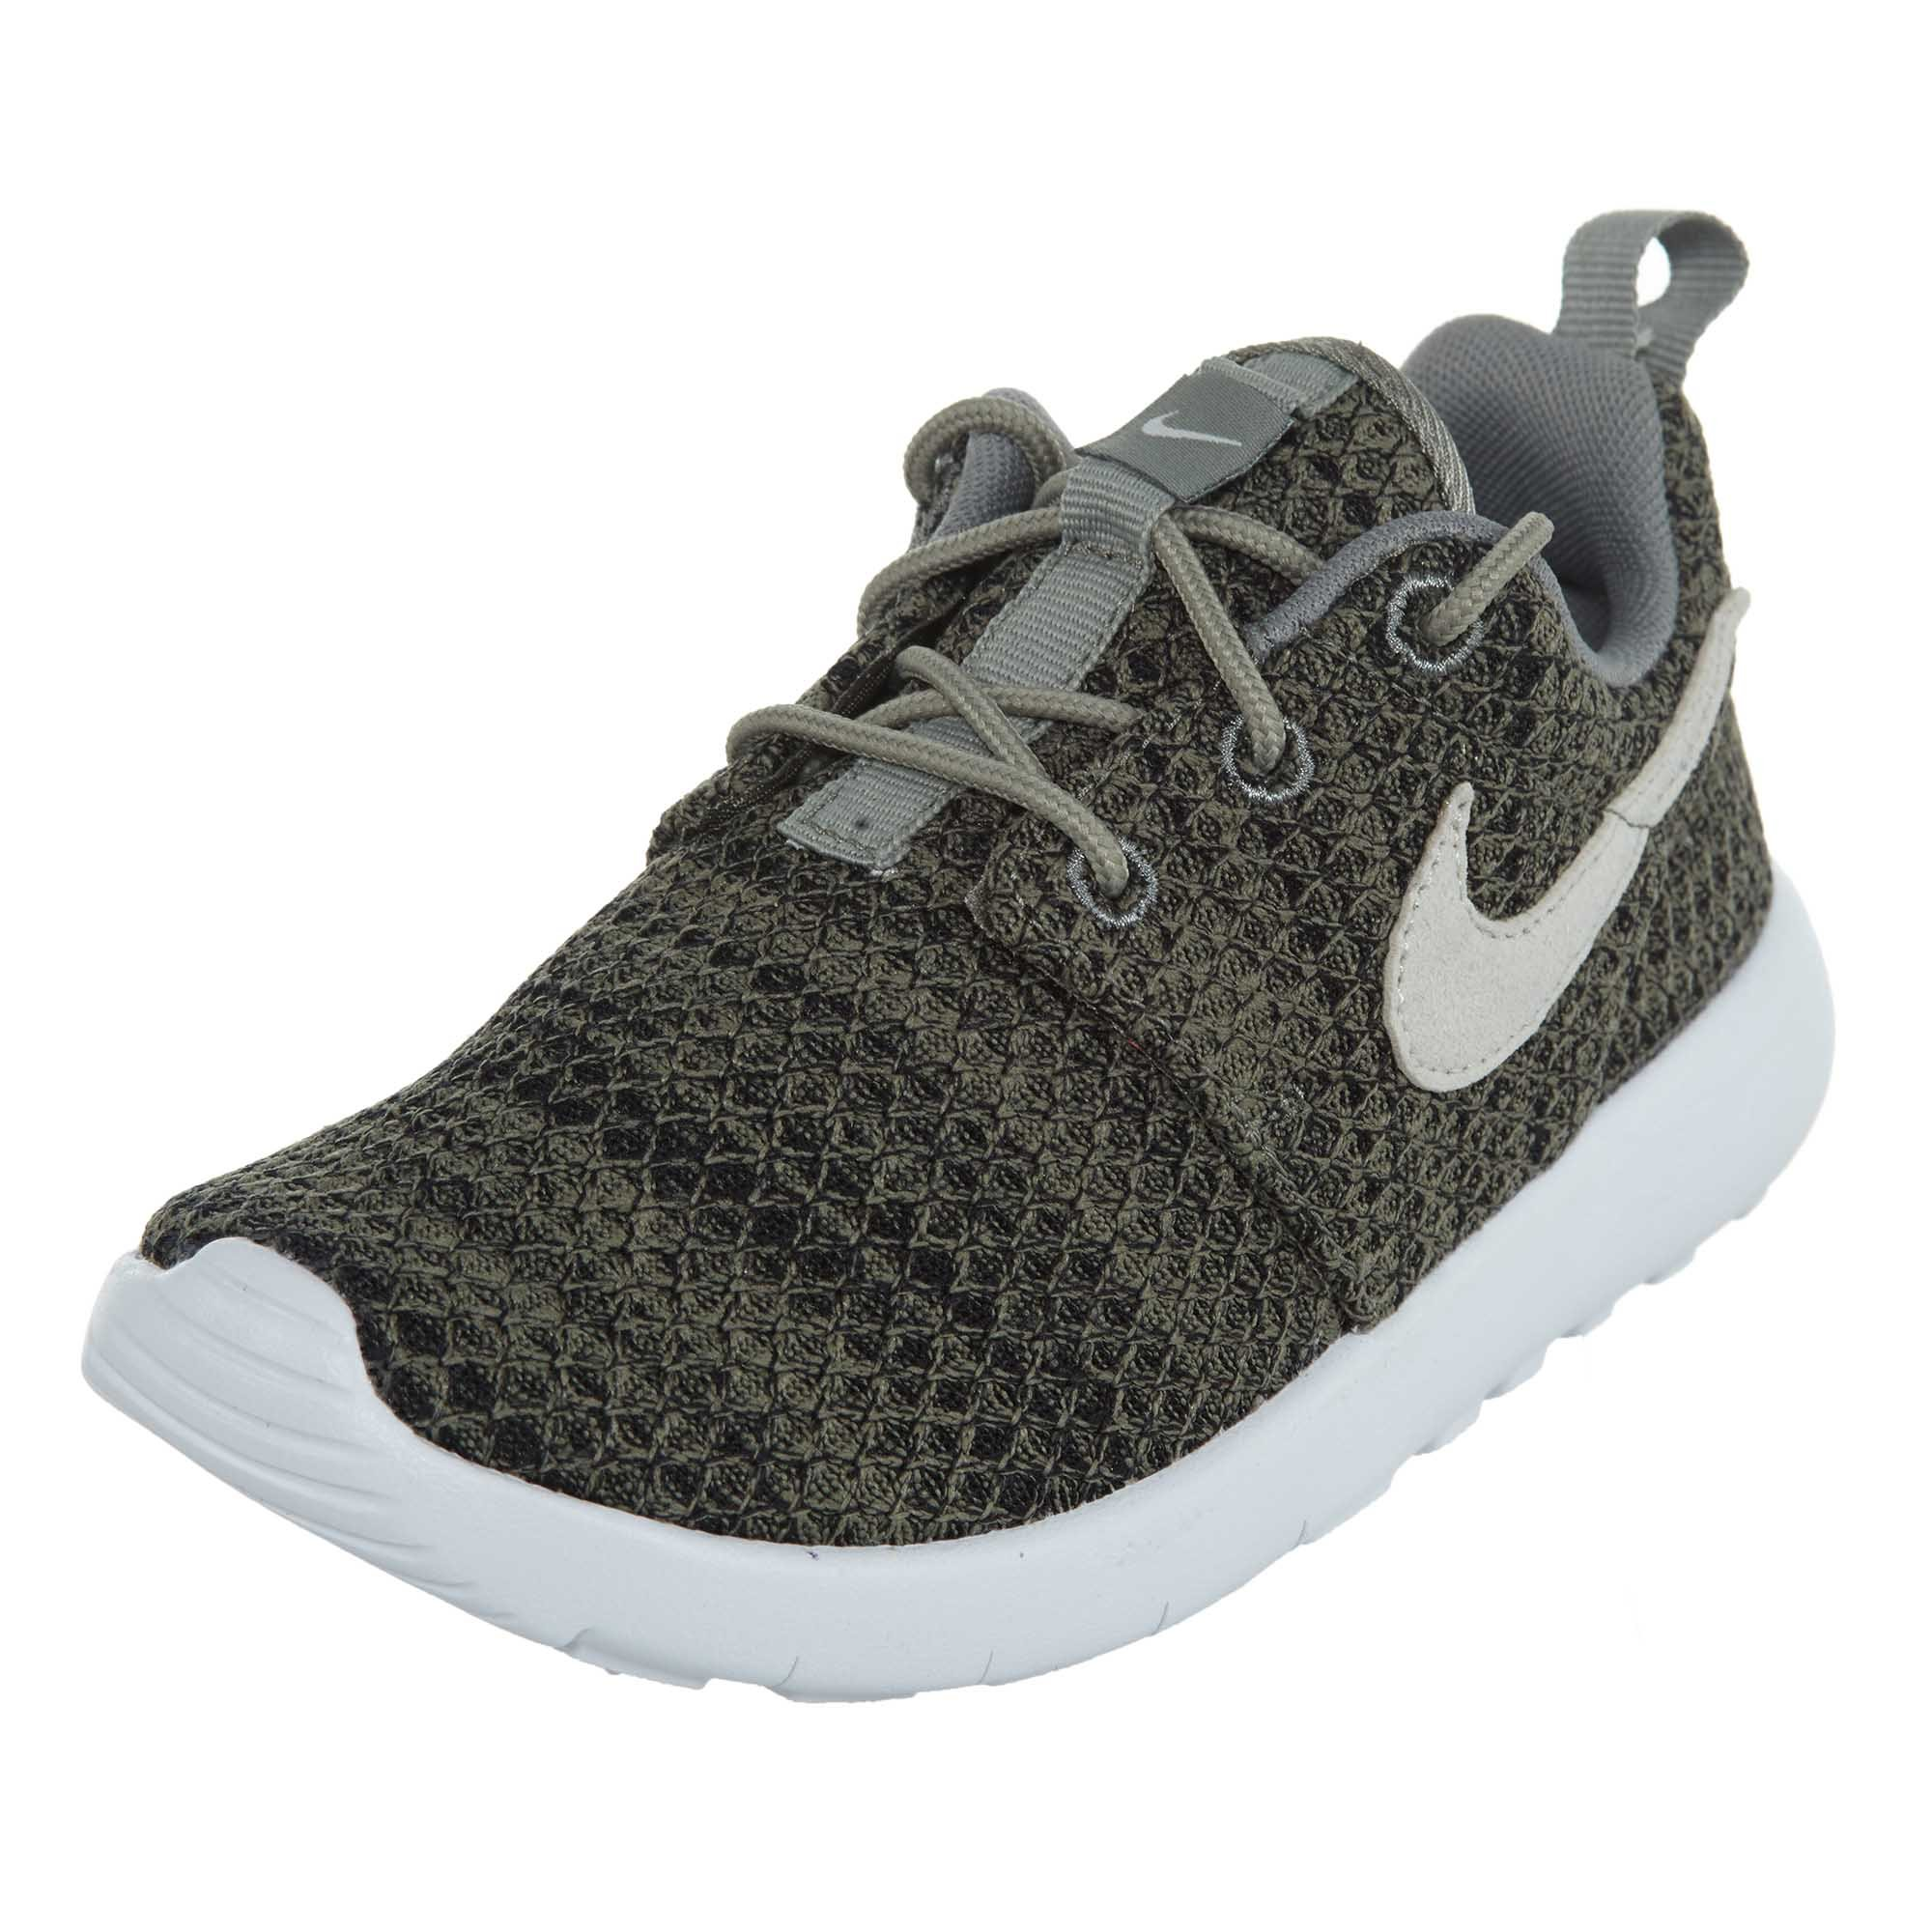 4de49a1e0812 Galleon - NIKE Roshe One Toddlers Style  749427-042 Size  10.5 C US